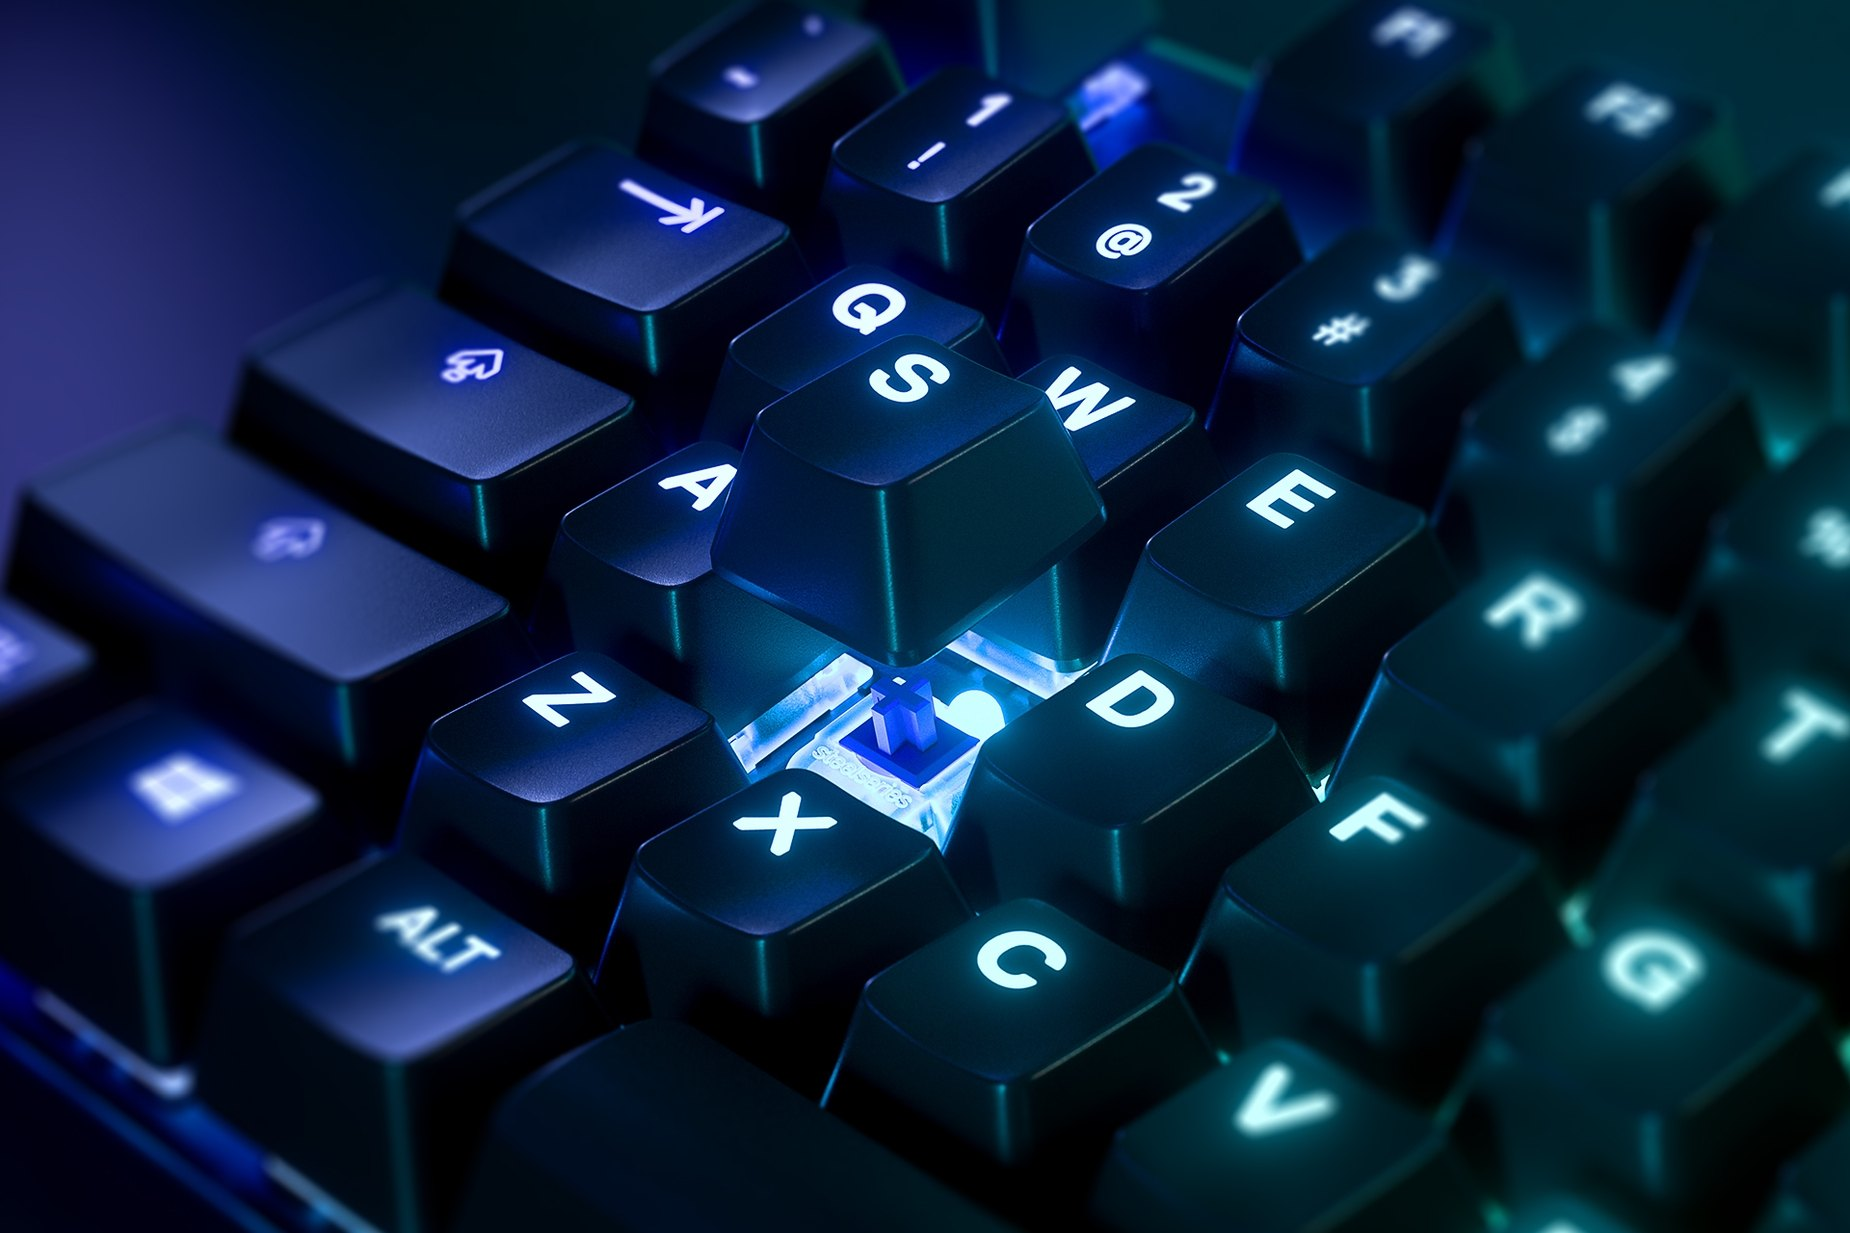 Zoomed in view of a single key on the German - Apex 7 (Blue Switch) gaming keyboard, the key is raised up to show the SteelSeries QX2 Mechanical RGB Switch underneath